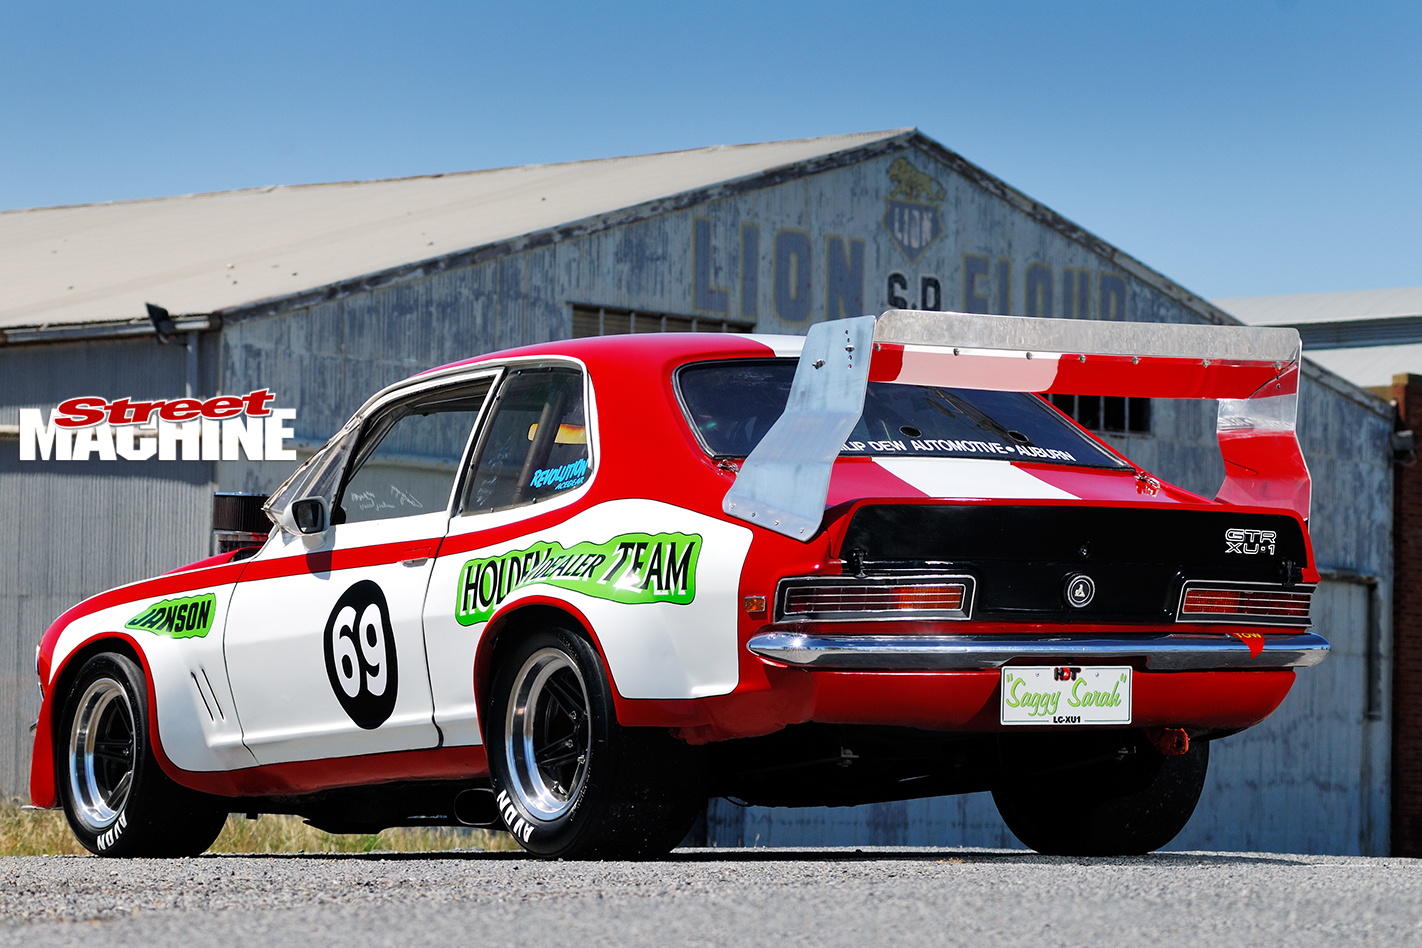 Holden -Torana -XU1-Saggy -Sarah -rear